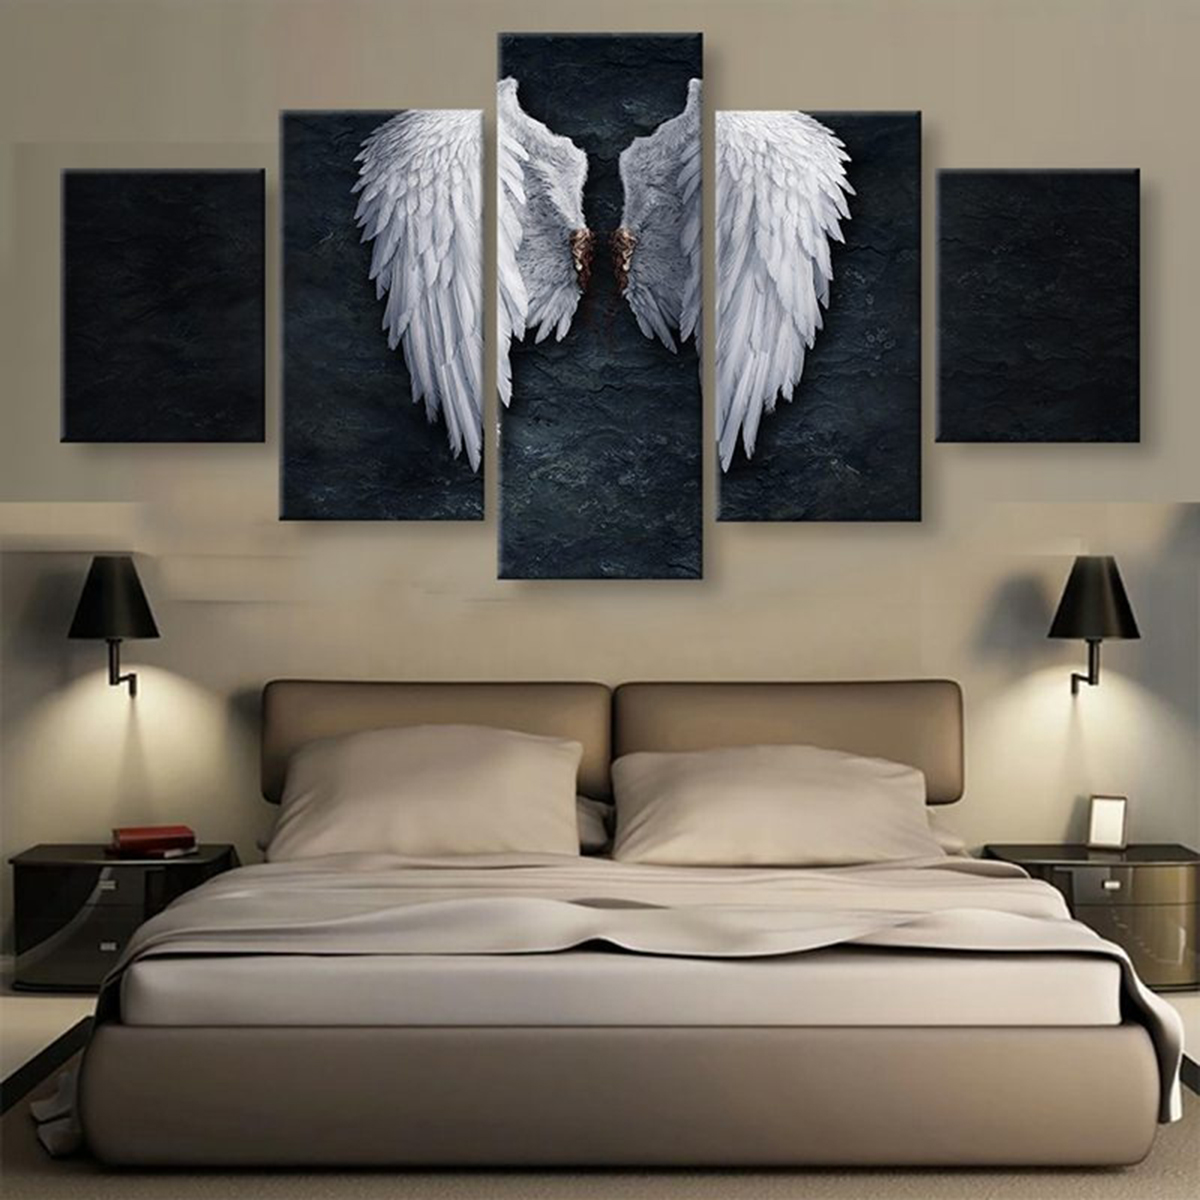 5 Panels BANKSY ANGEL WINGS Print Picture Art Pictures Canvas Wall Art Paintings Unframed for Home Decorations